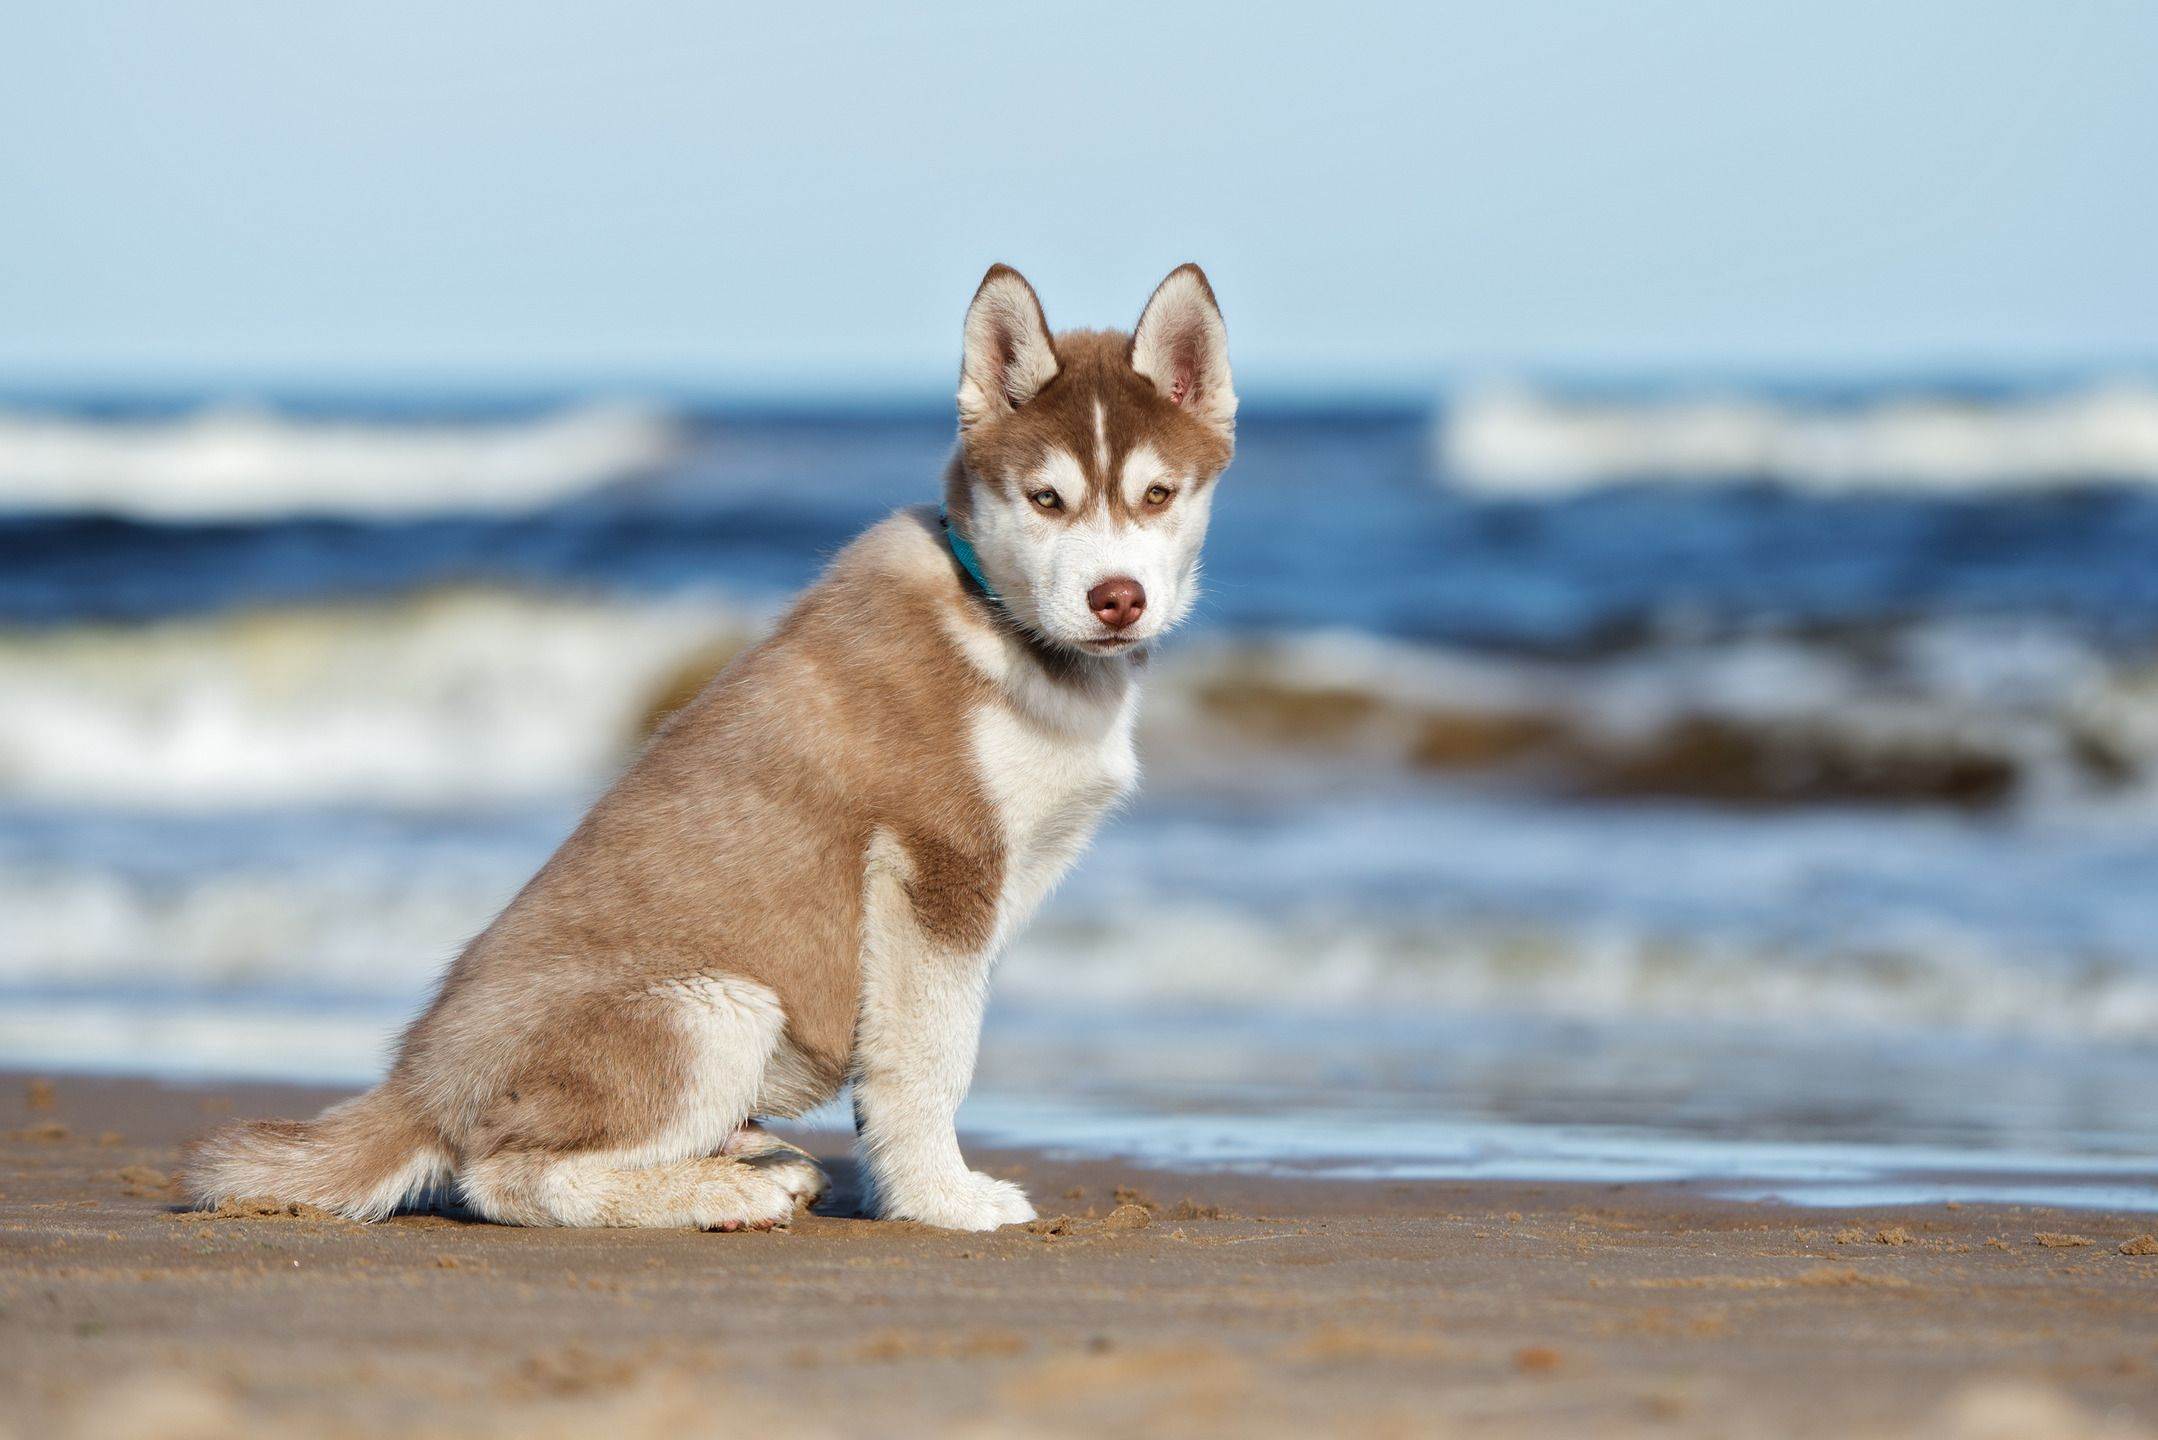 Siberian Husky Puppy By Sea Shore Just Wating For Owner To Throw A